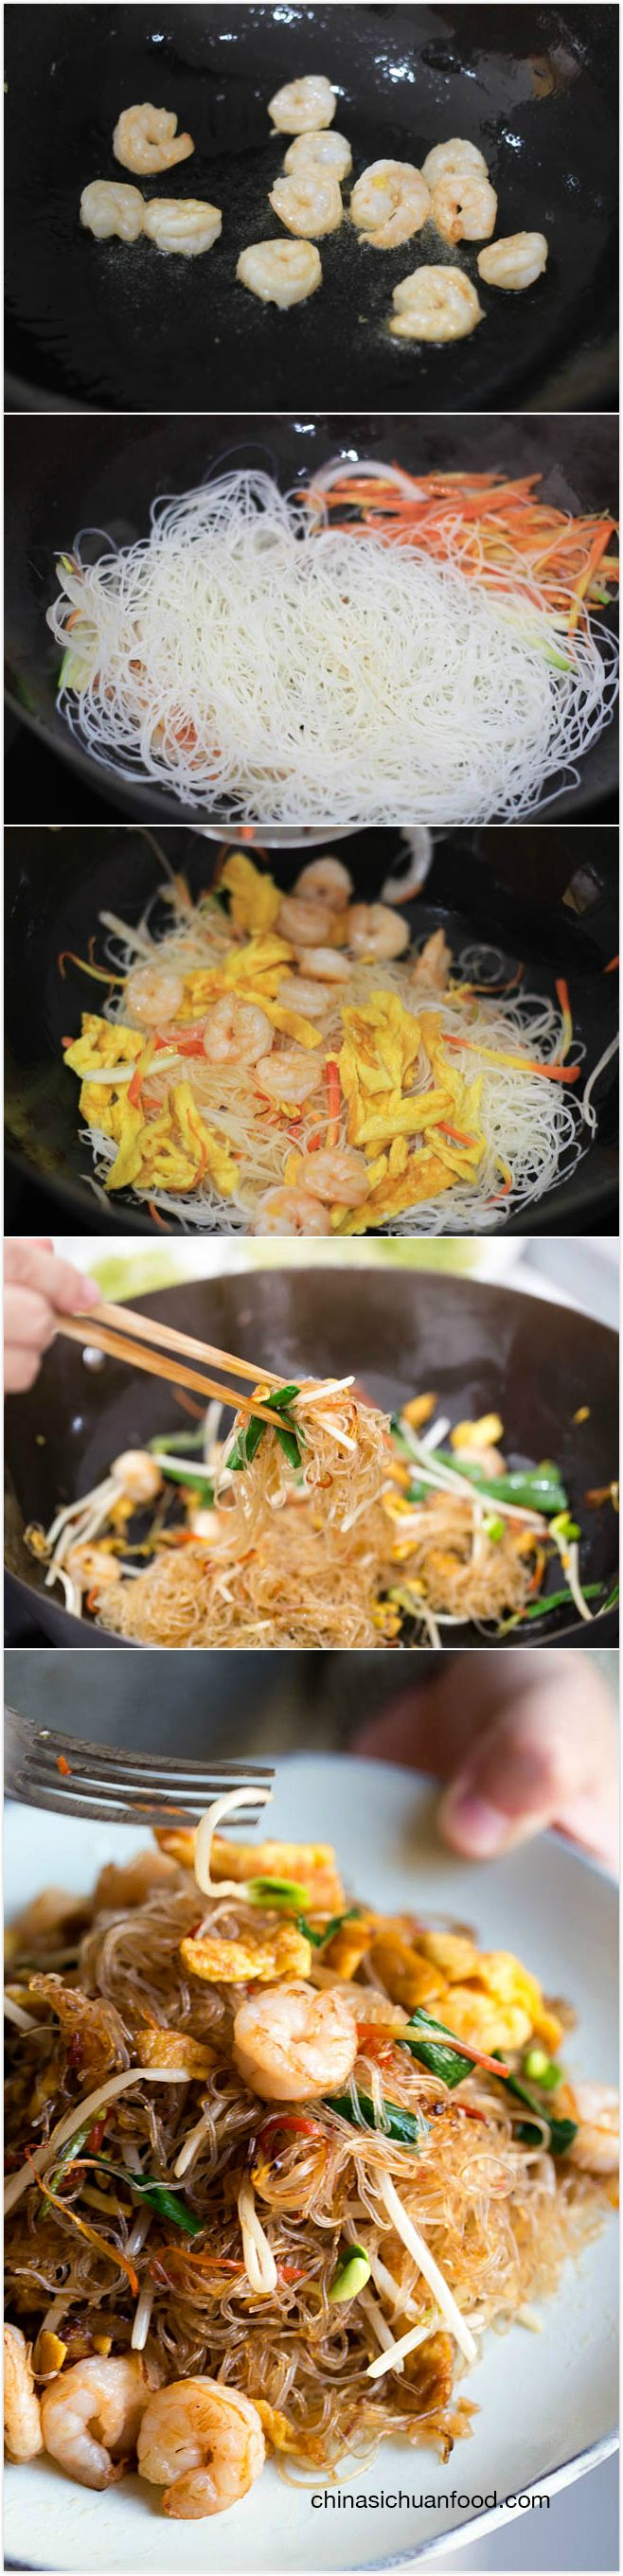 Smok n thai home style cooking